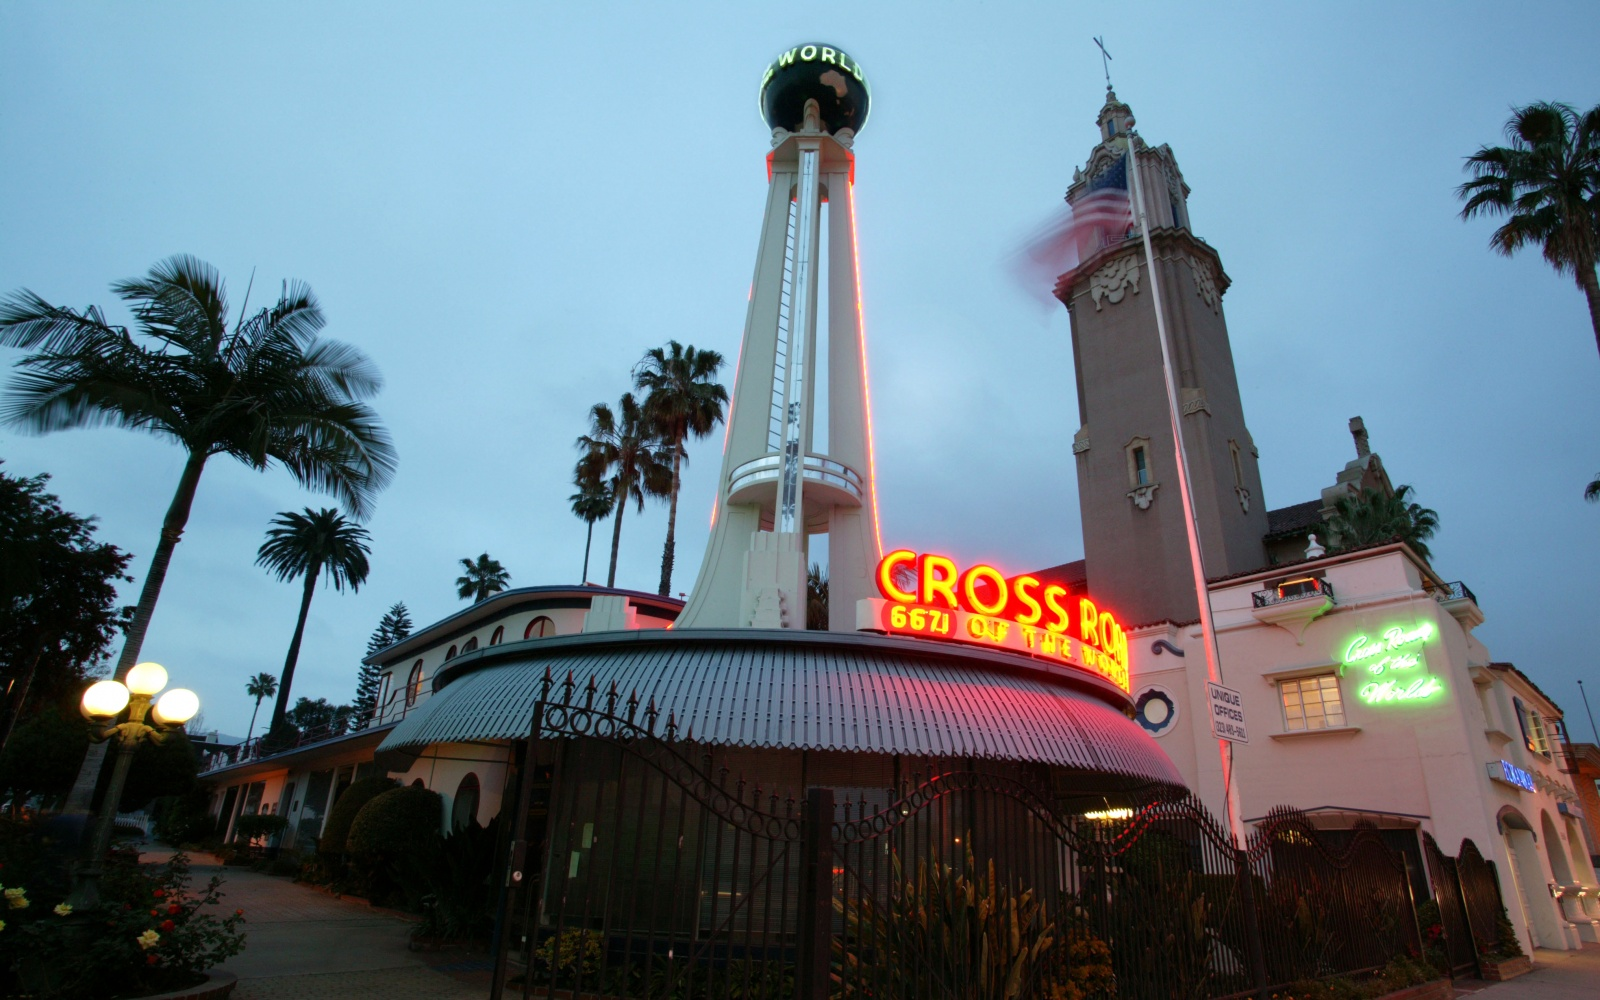 Crossroads of the World landmark building in Hollywood, California